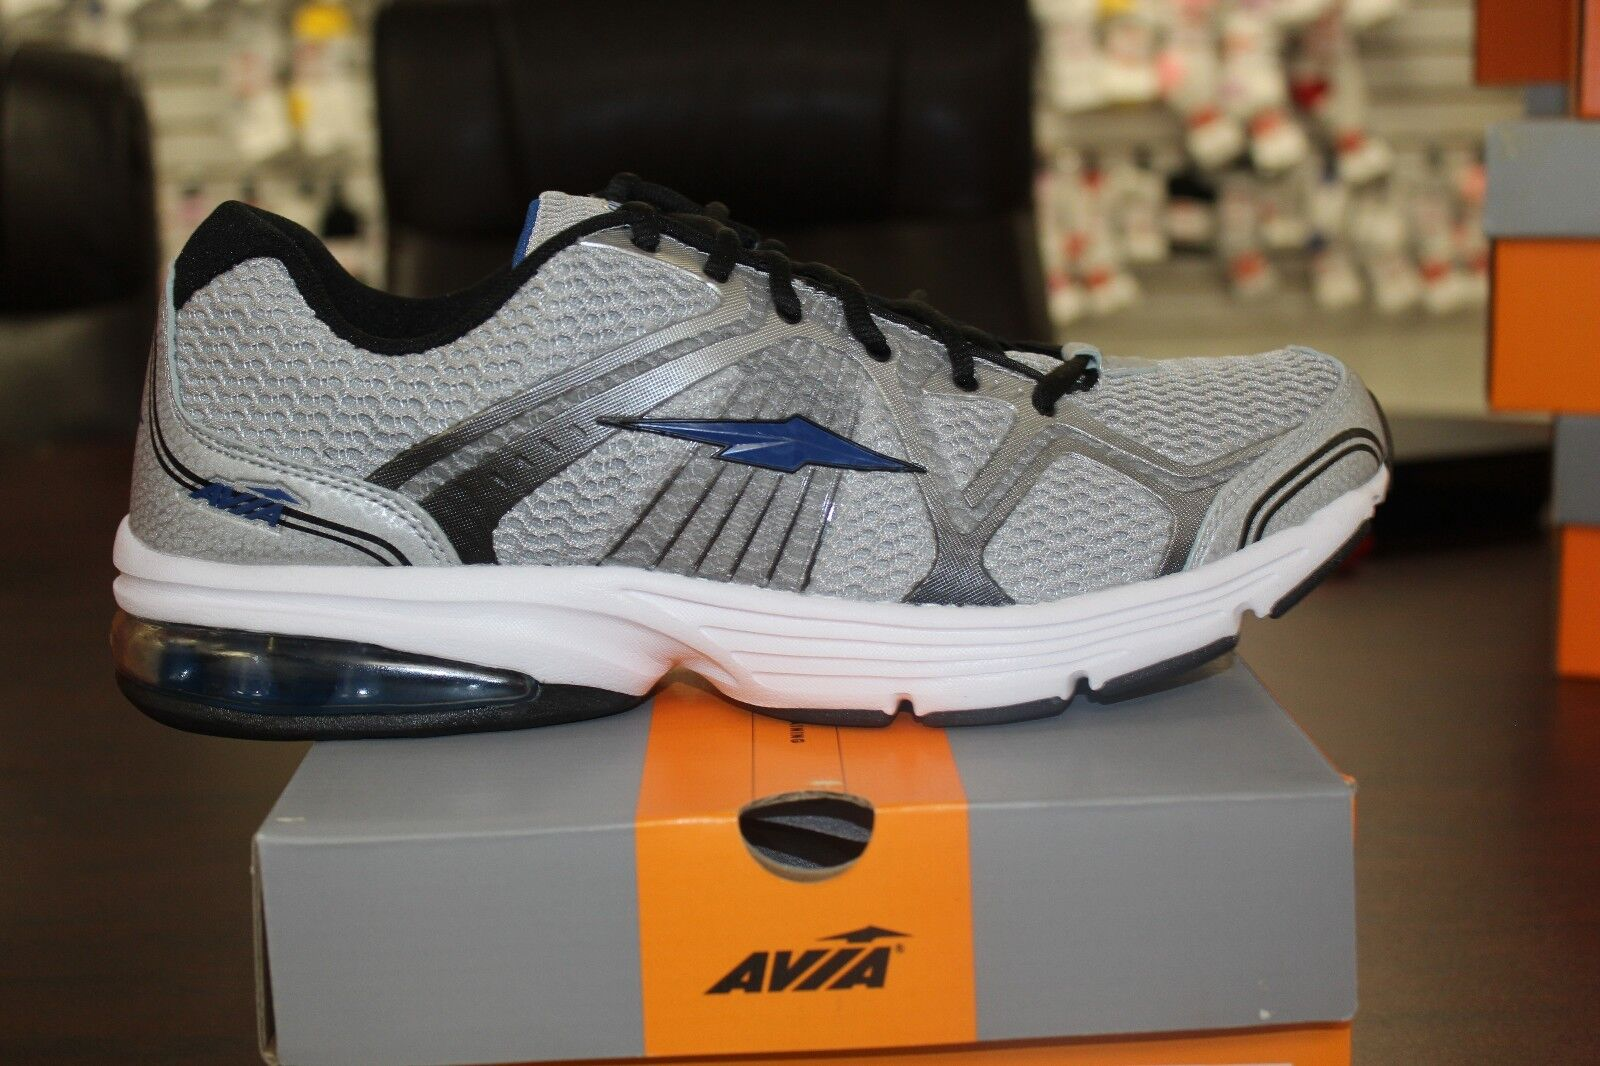 Men's Avia Running Sneakers A5251MSDX Grey Navy Black Cross Training shoes